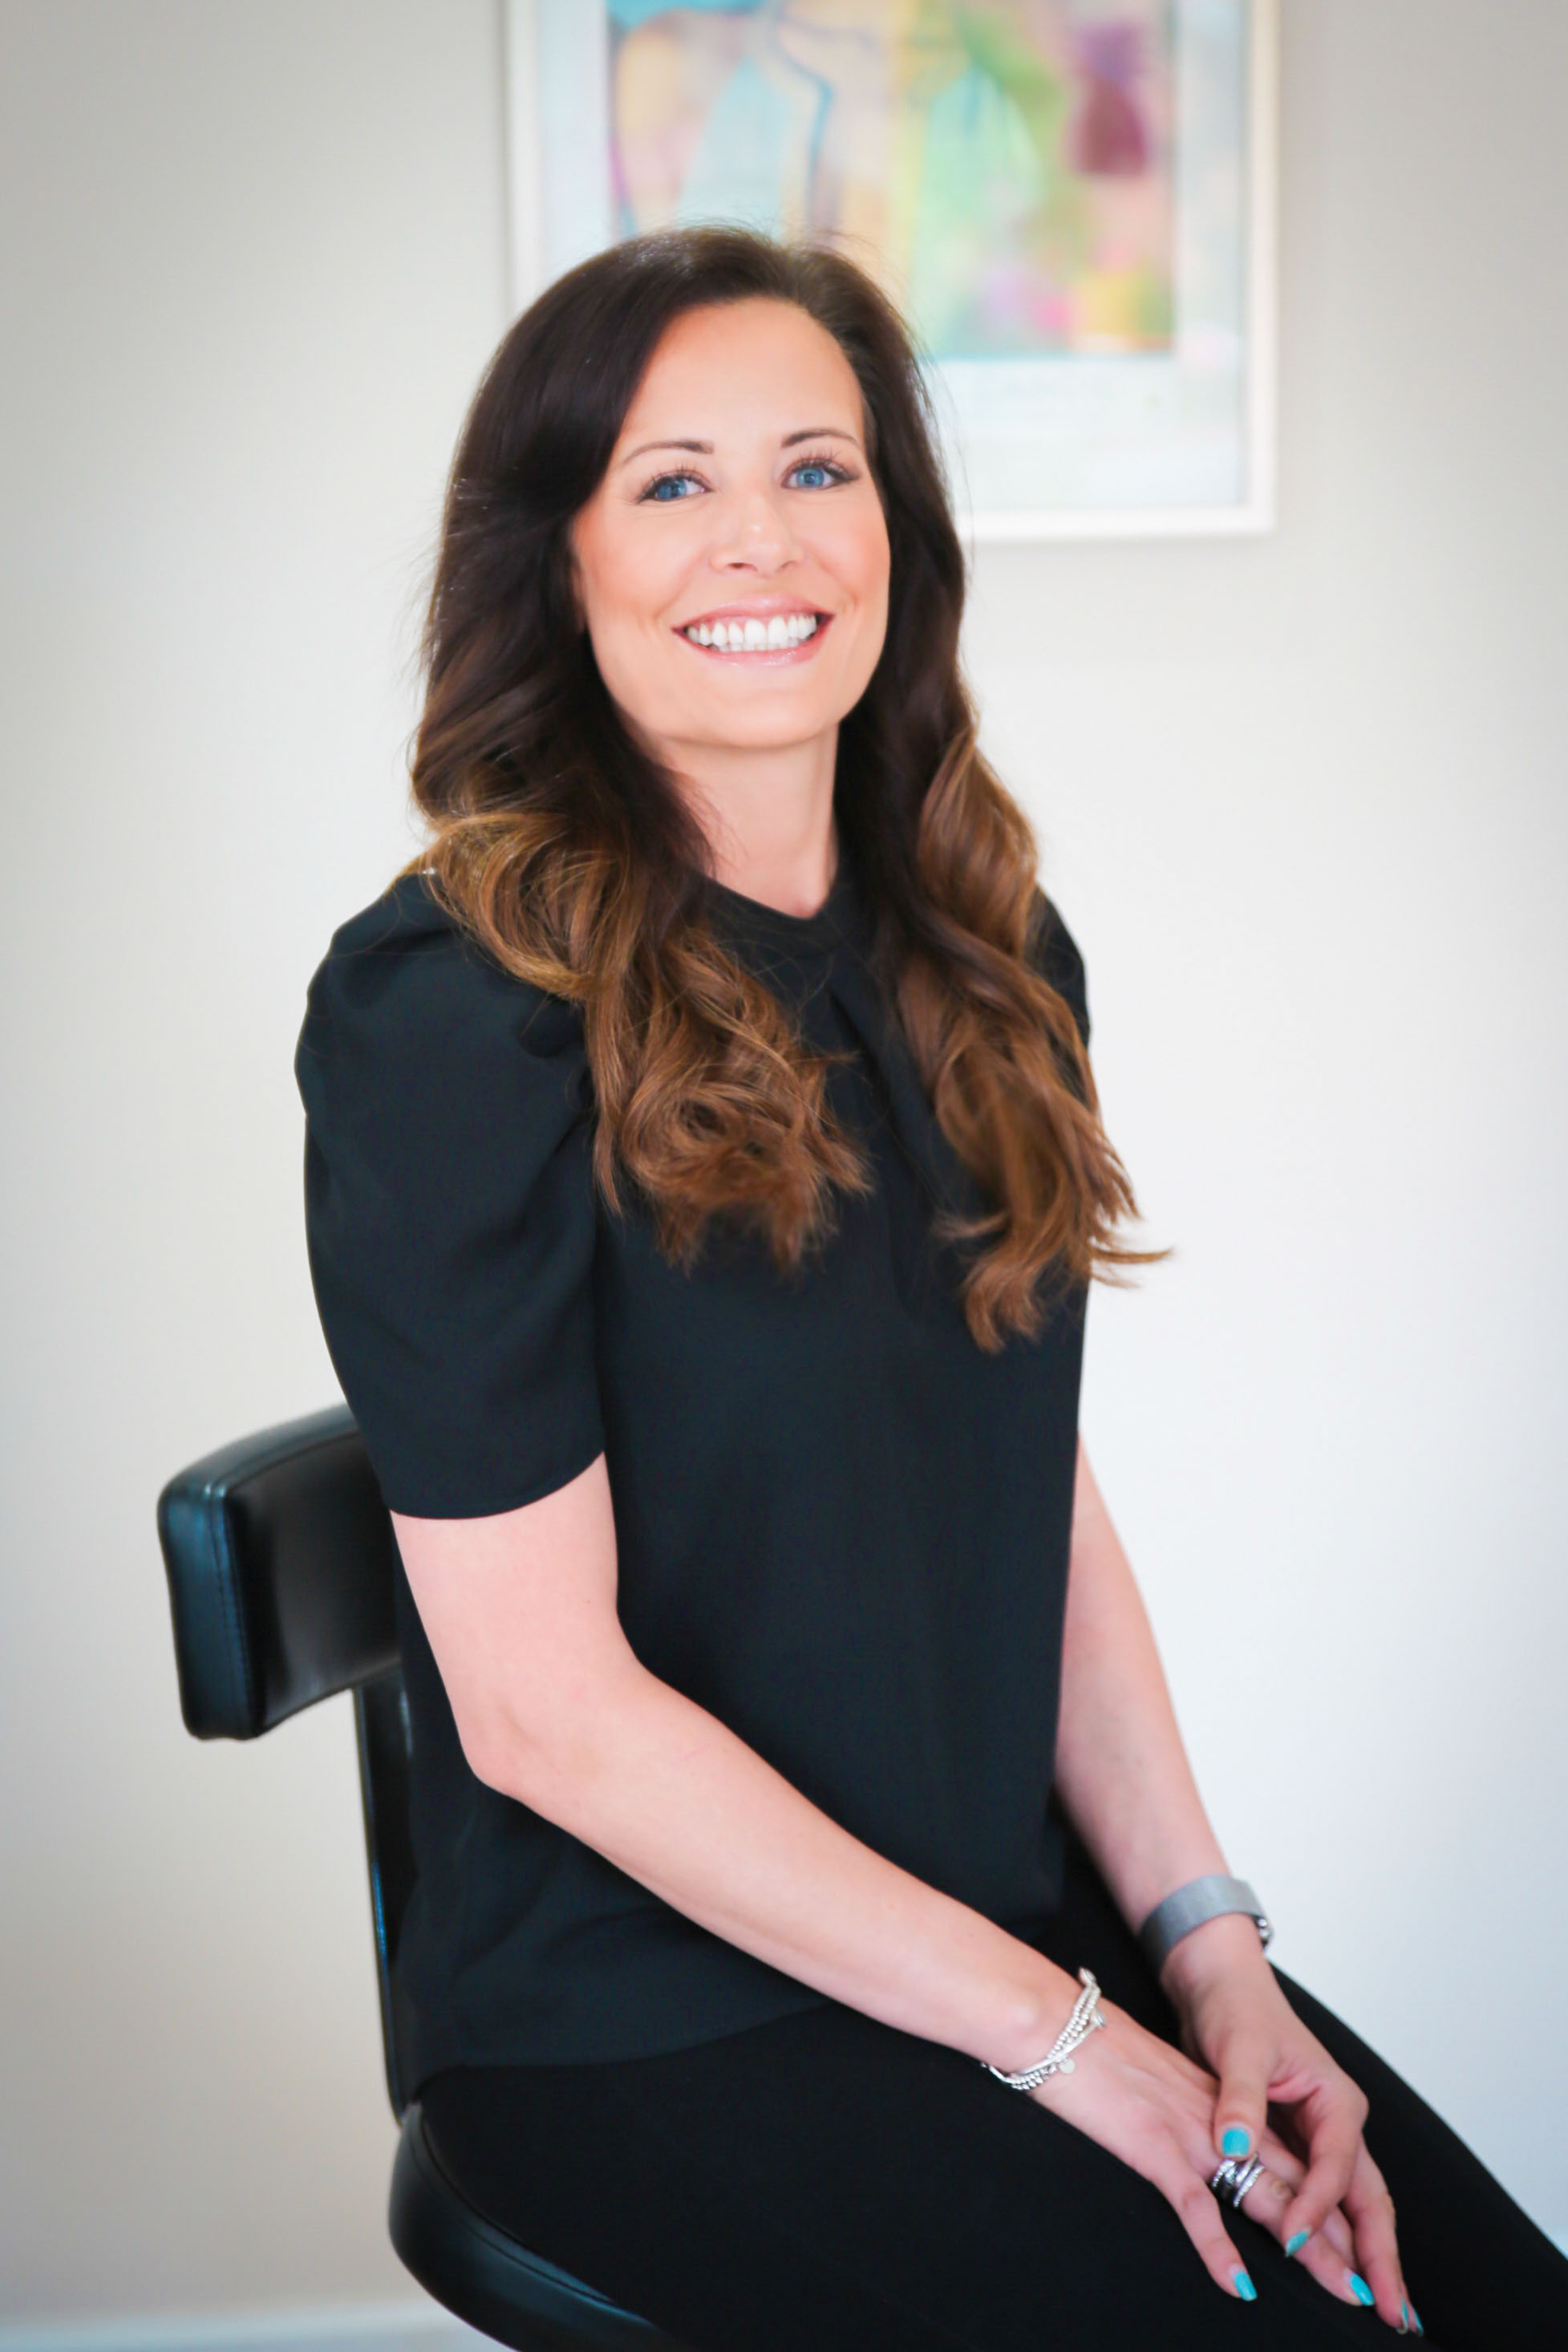 CLARE HOBSON - Salon Consultant & Owner